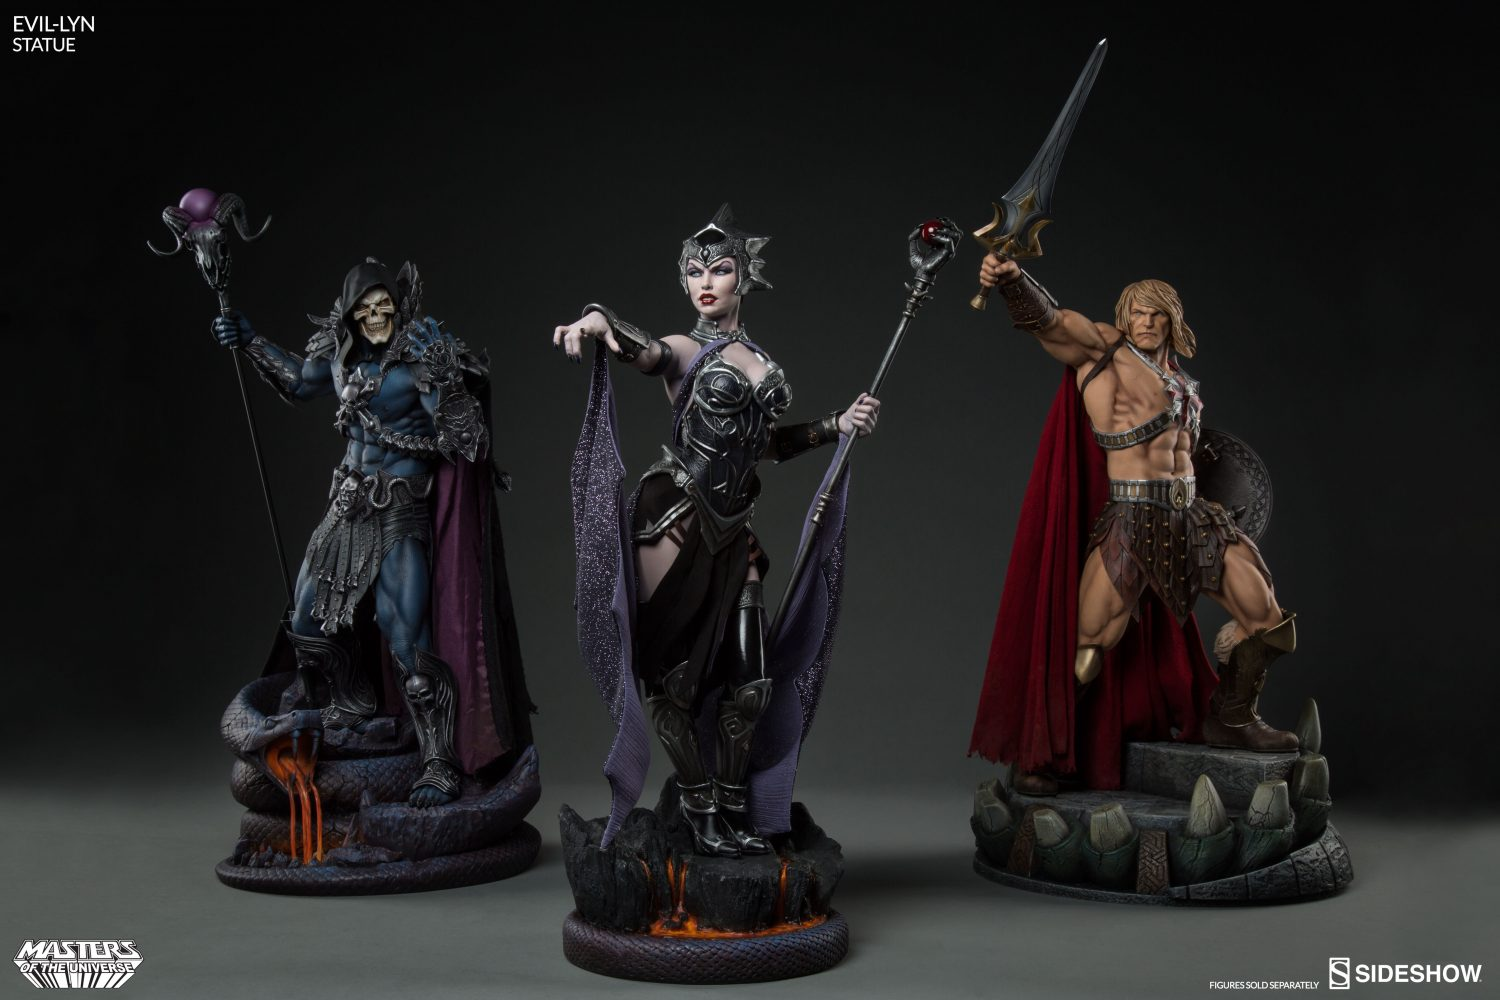 Sideshow Masters Of The Universe Evil Lyn Statue Pre-Orders